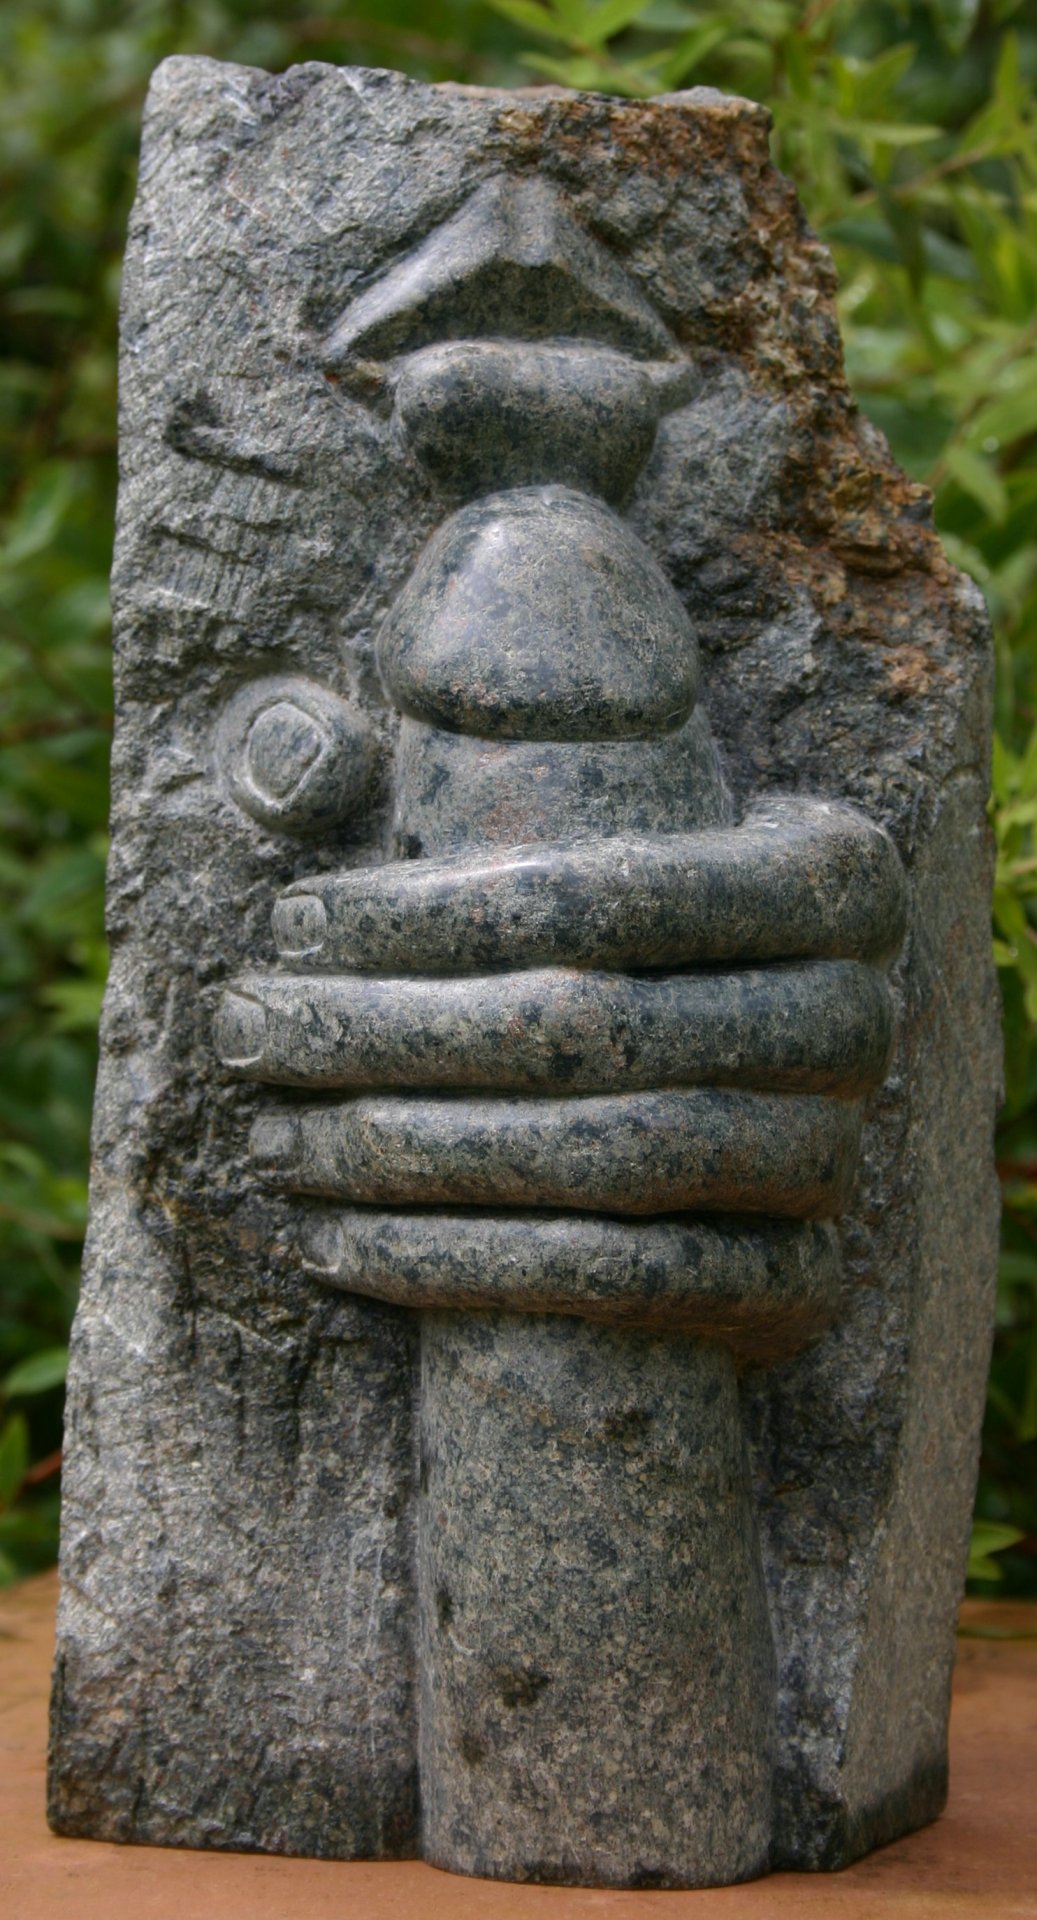 I carved this in 1996 out of a stone called Polyphant. It is about 25cm high by Paul Martin If I'm not mistaken, Paul you've submited this particular piece to be shared here several months back.. However, its such a well actualized sculpture, in a medium which truly deserves the recognition of difficulty, that I am happy to re-post. ~ Eros